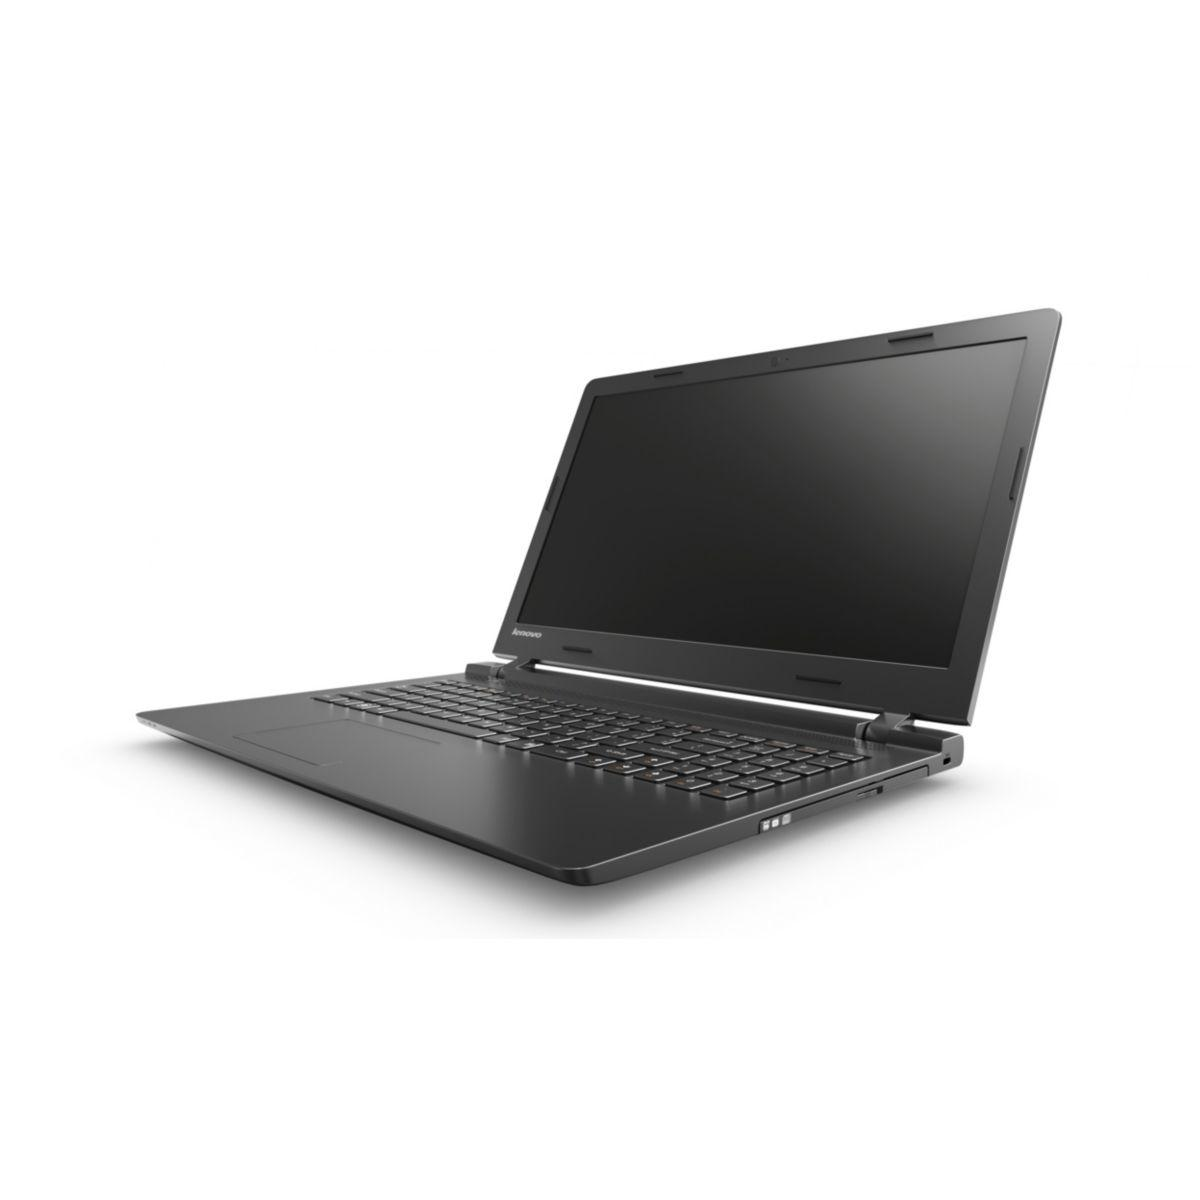 Pc portable lenovo b50-10 (photo)